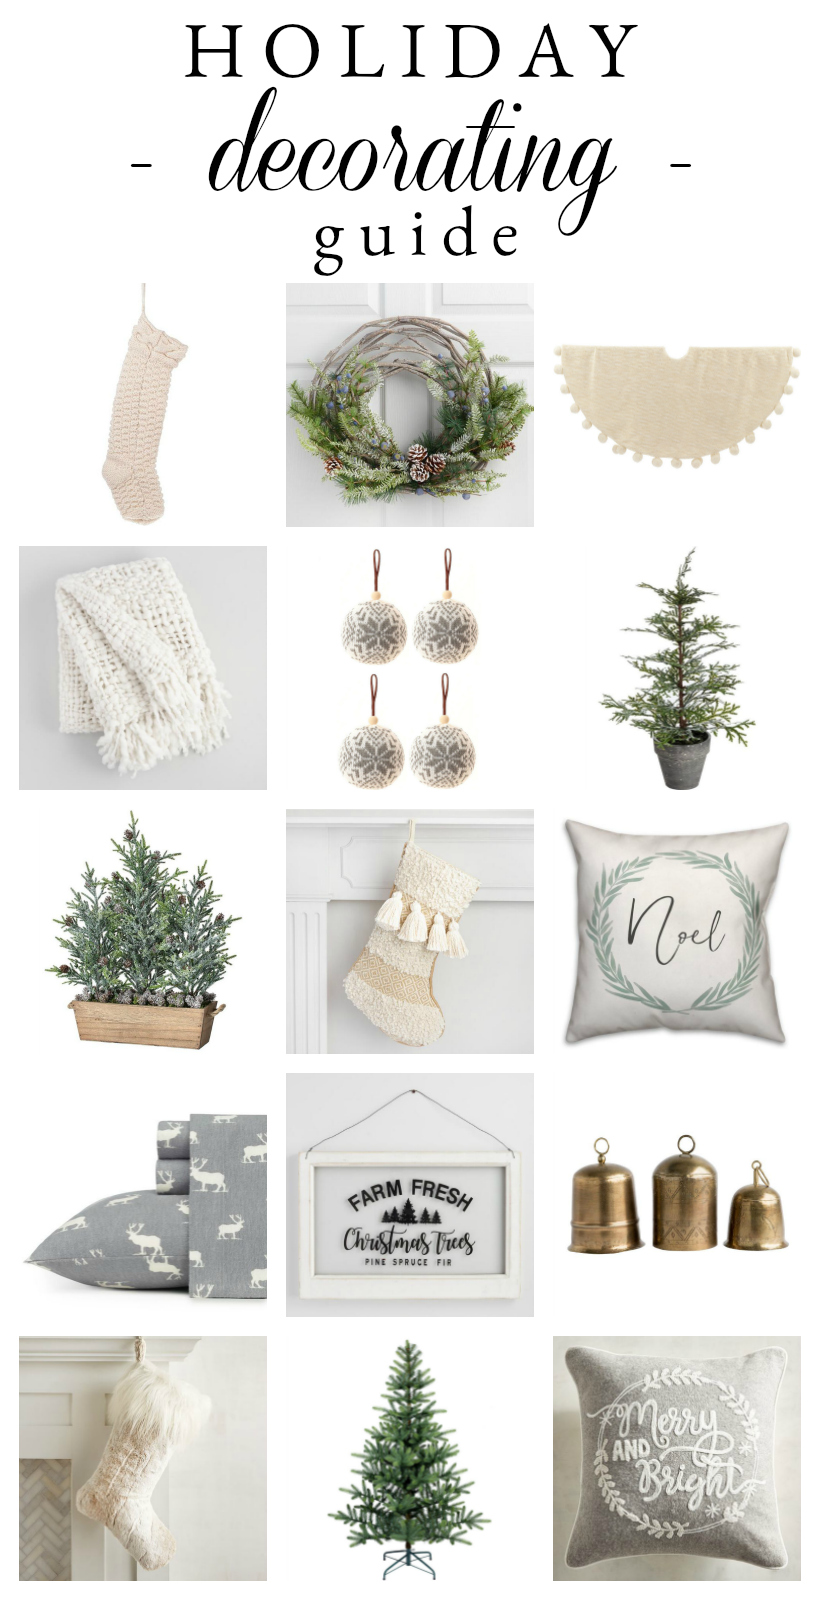 Holiday decorating inspiration to make your home warm, cozy and inviting